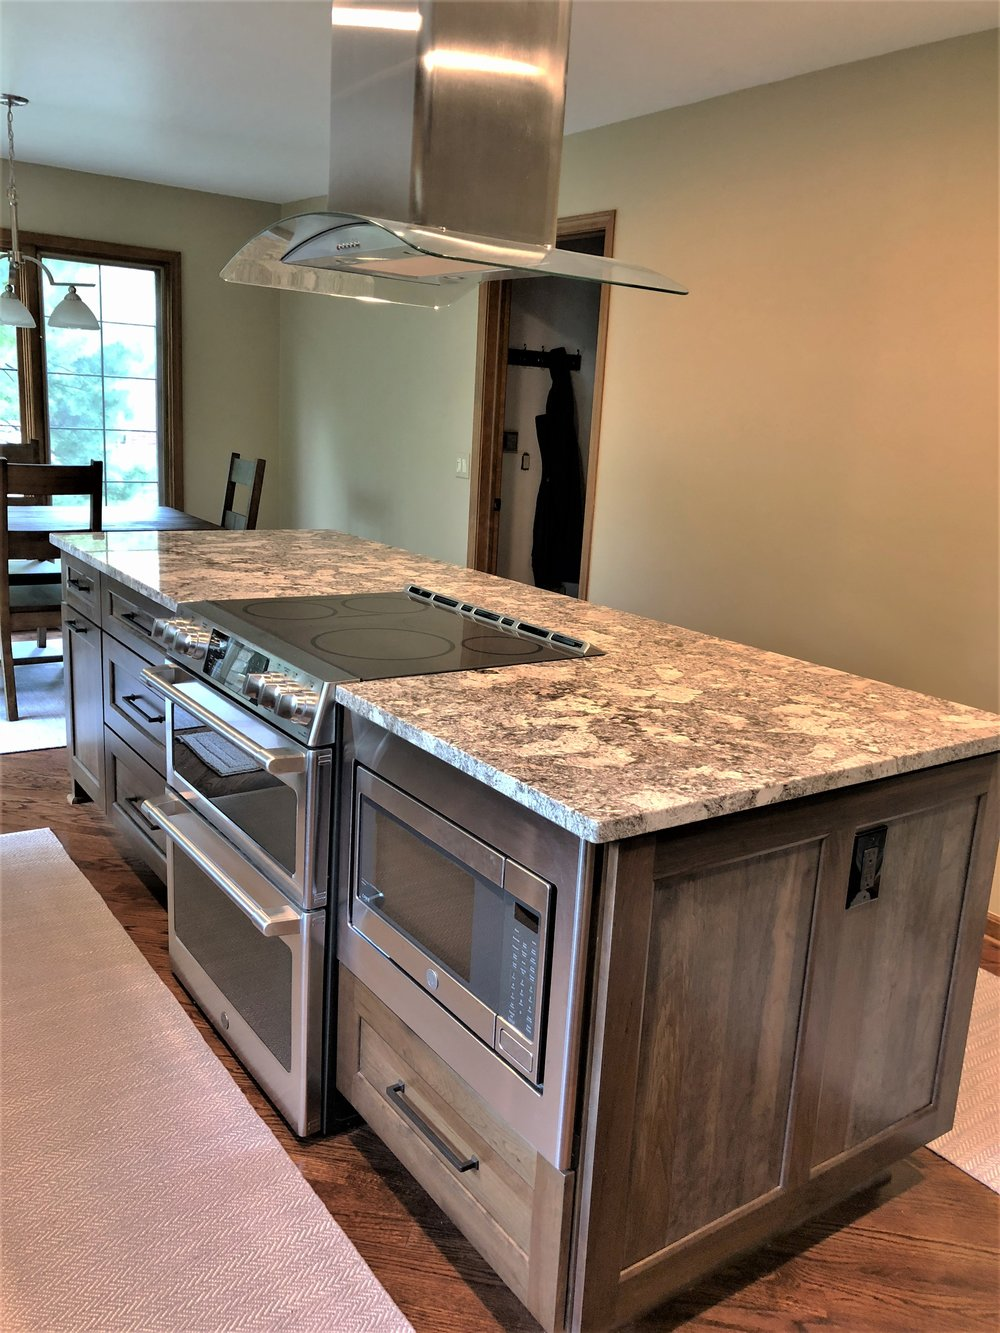 Updated kitchen island